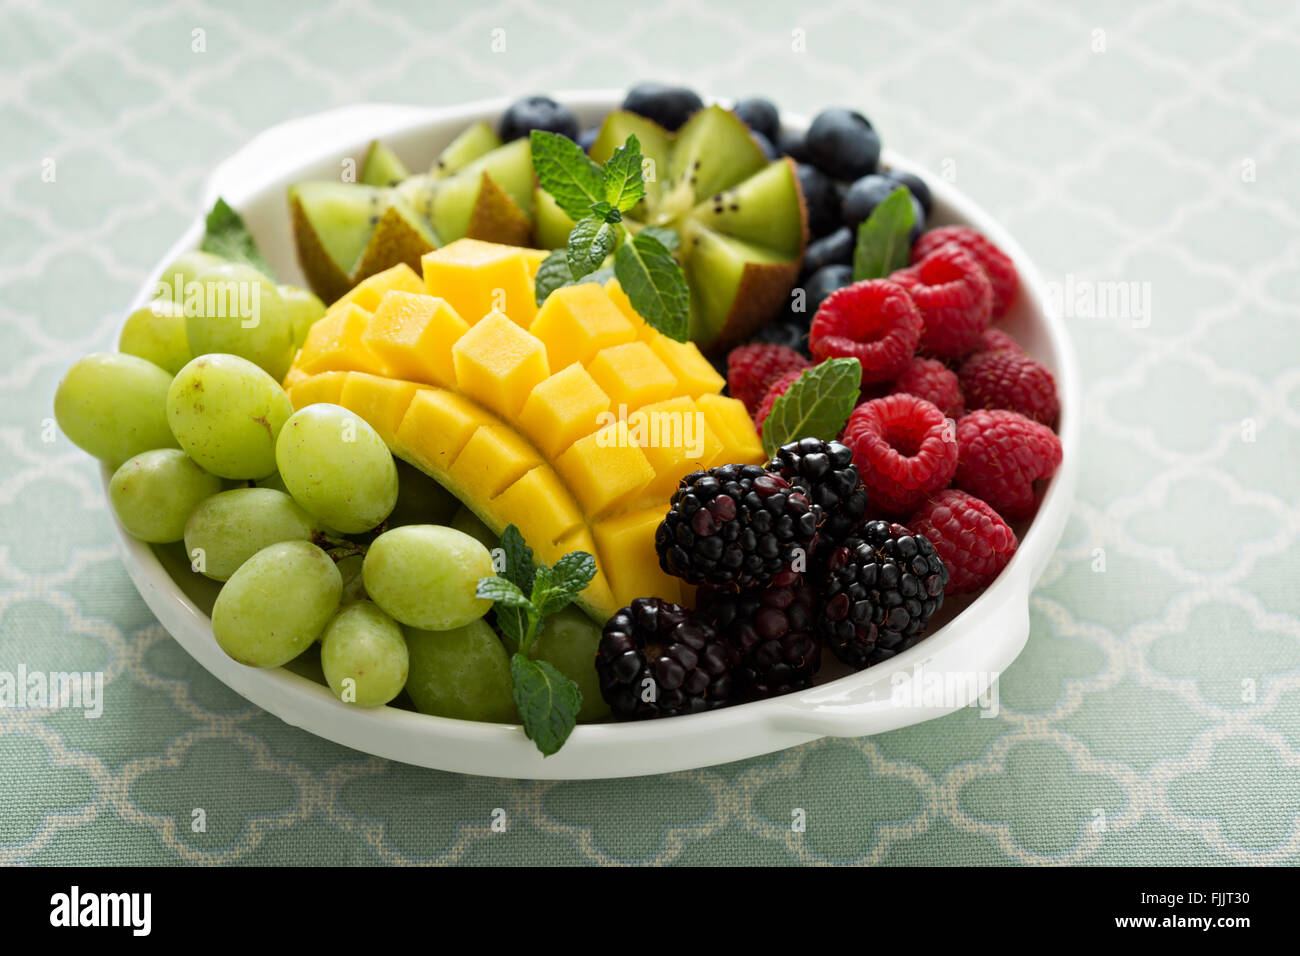 Fruit plate with berries, mango and kiwi - Stock Image